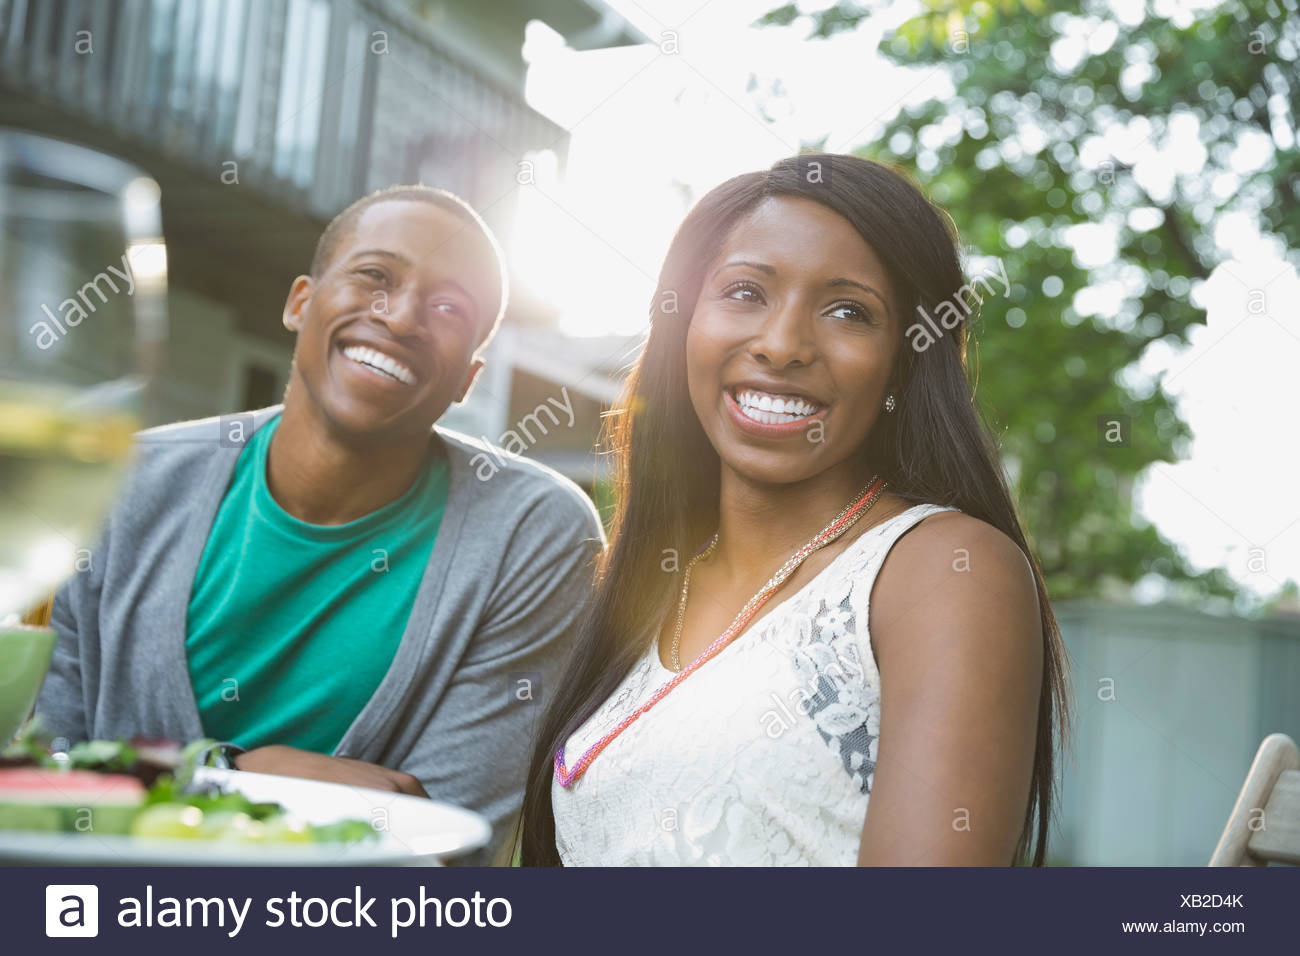 Cheerful couple sitting at outdoor dining table - Stock Image